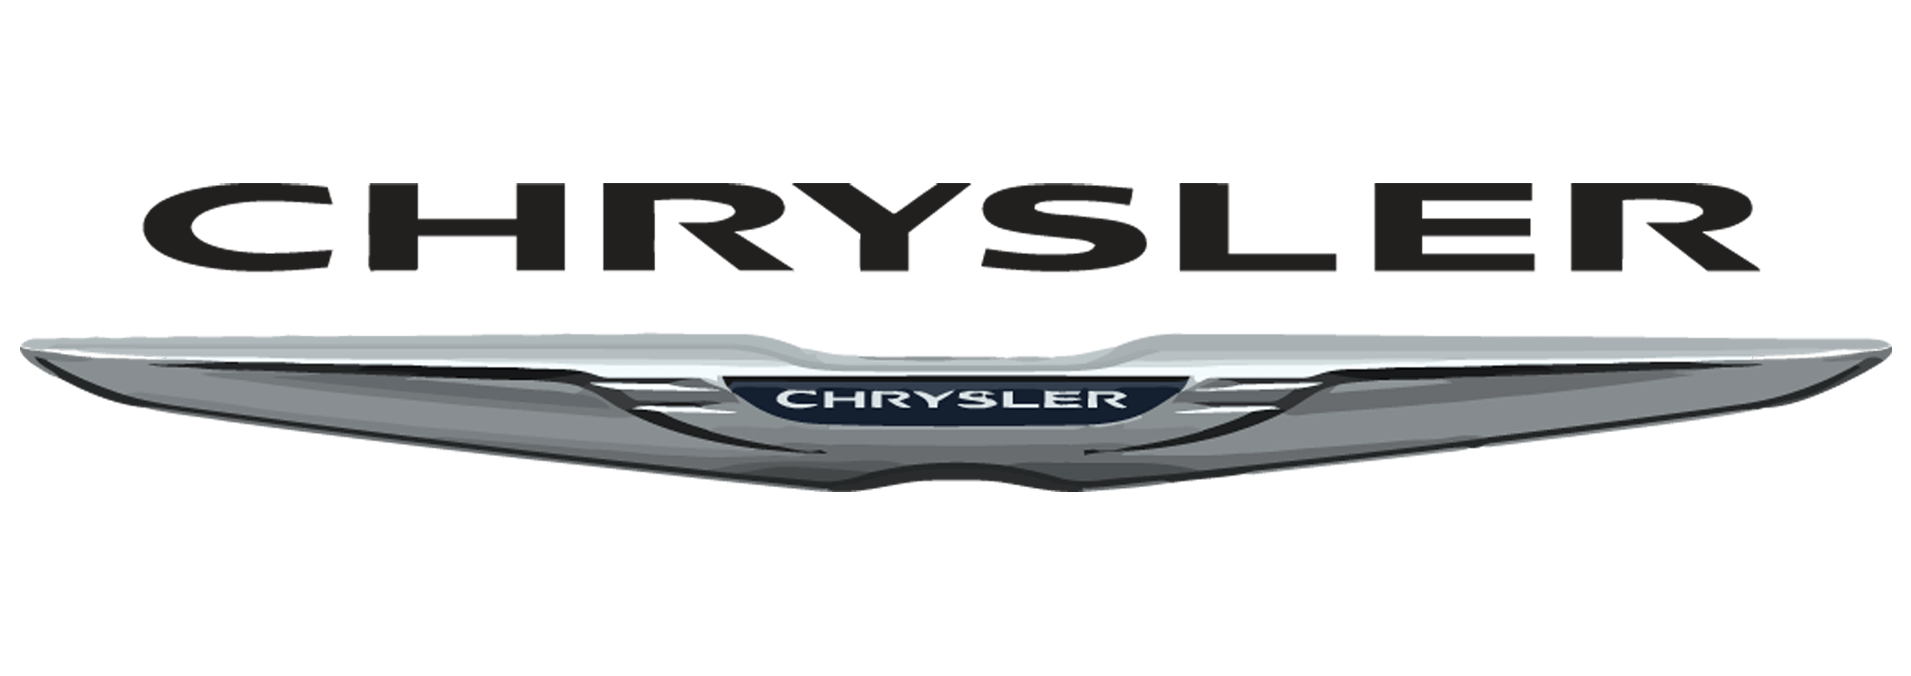 Is there a website where i can find chrysler information?